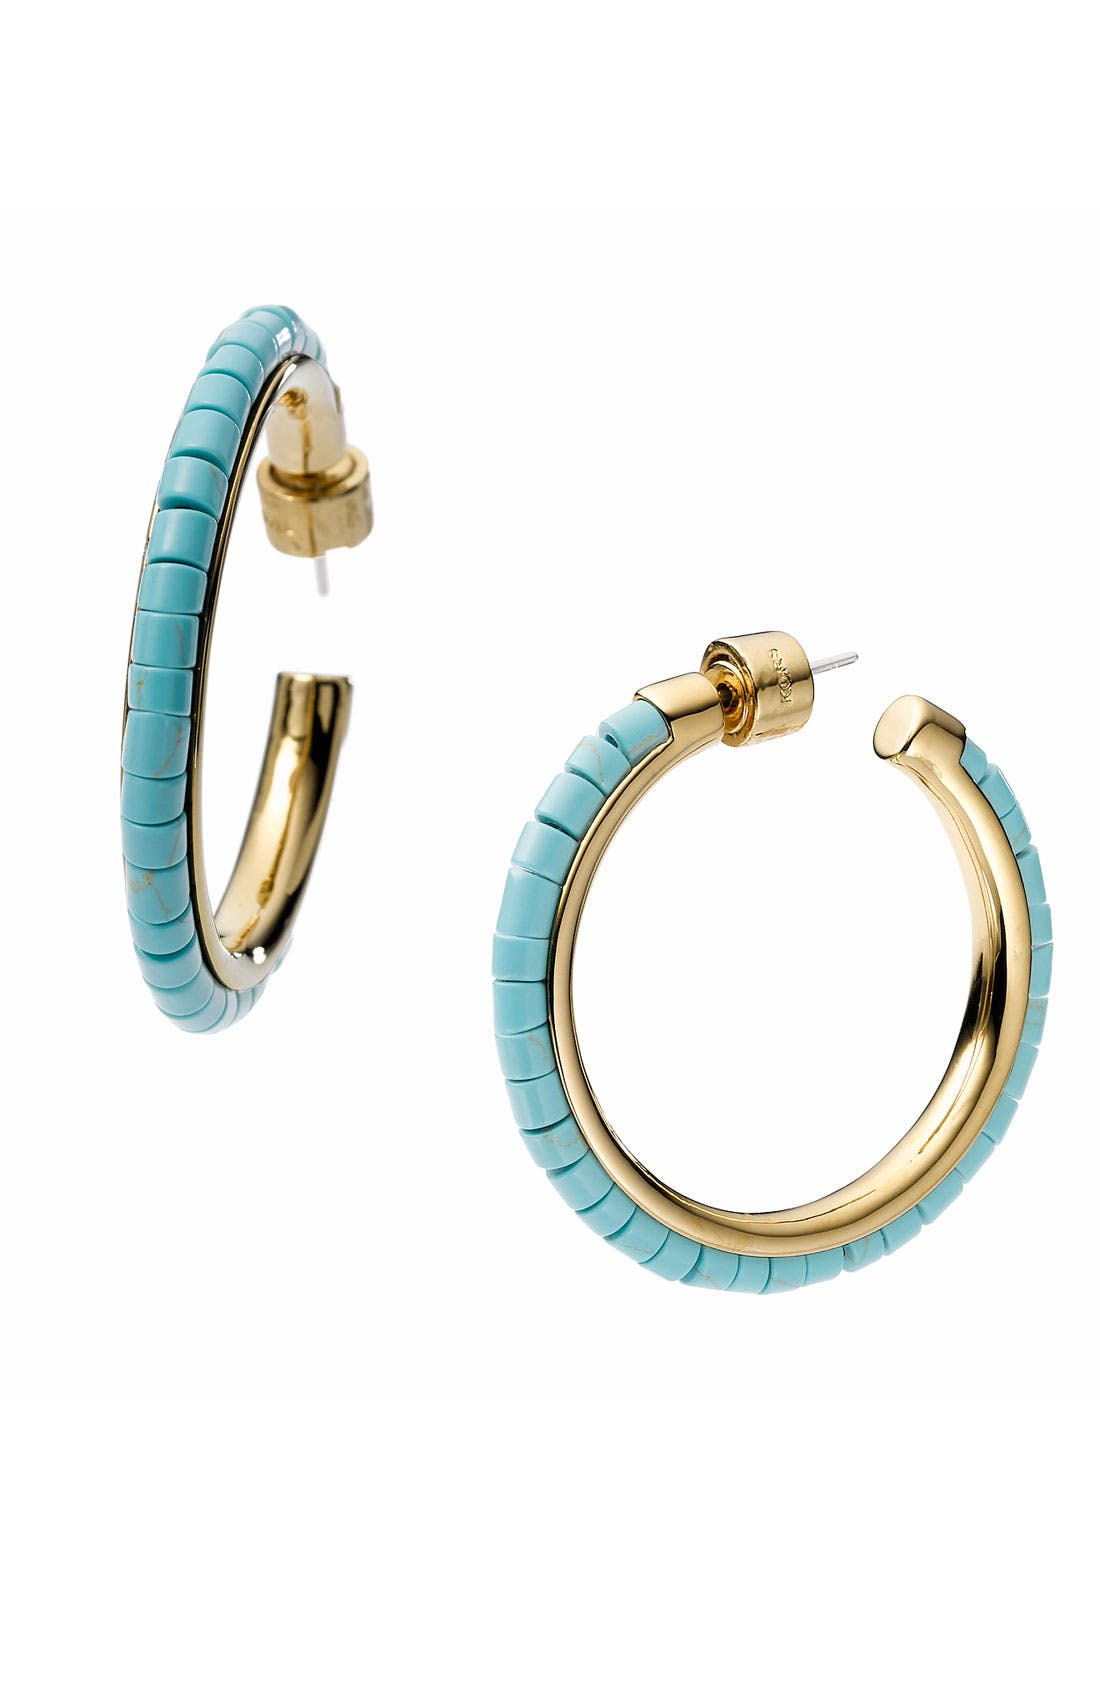 Main Image - Michael Kors 'Sleek Exotics' Medium Bead Hoop Earrings